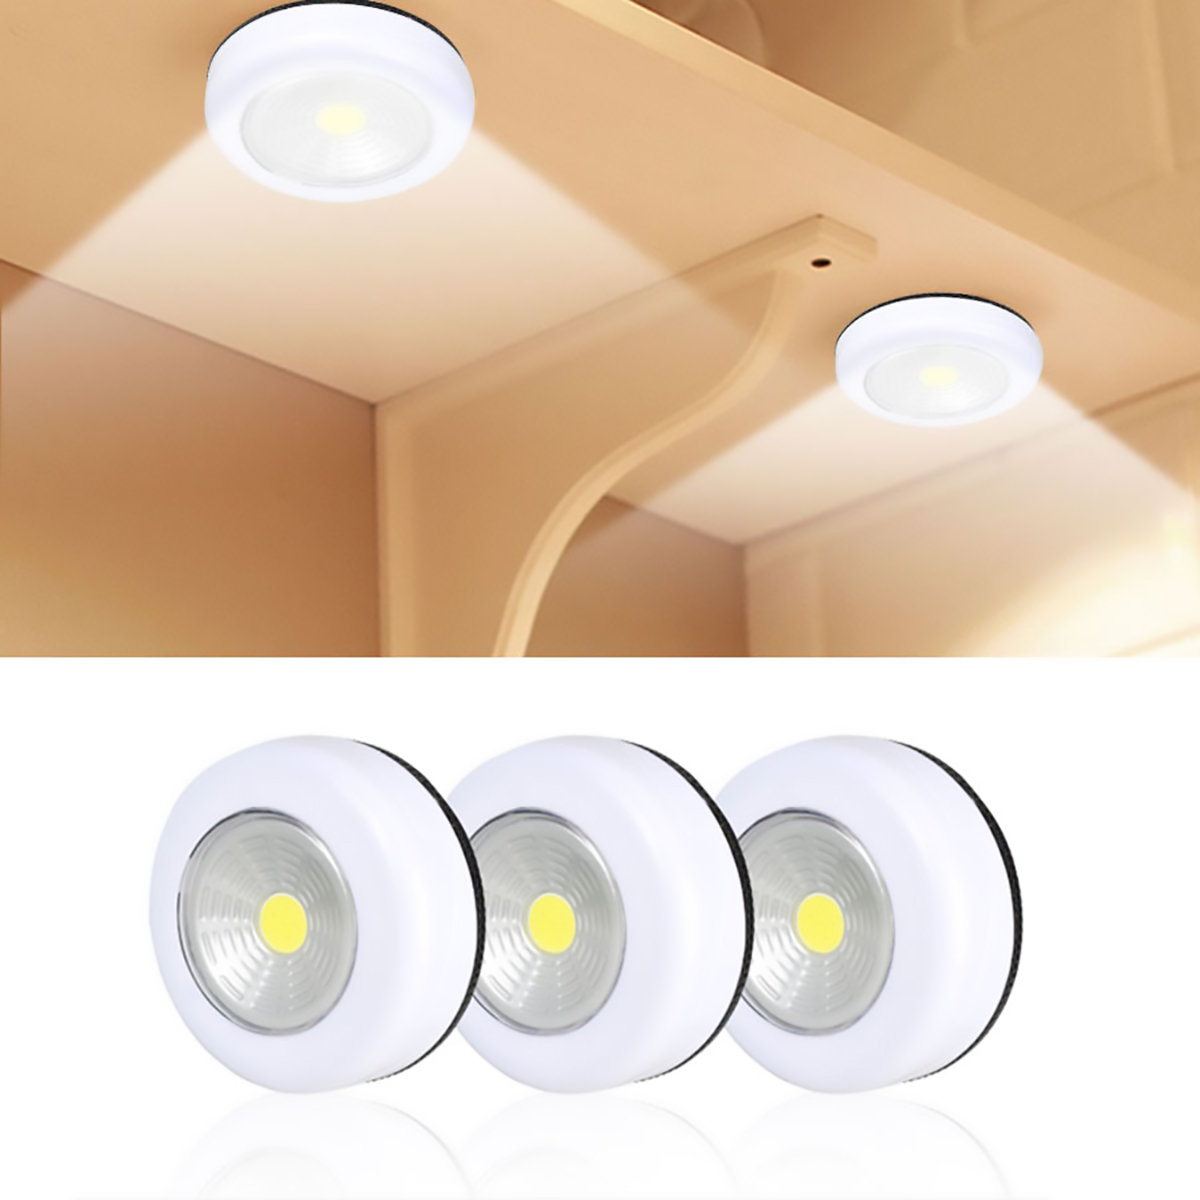 COB LED Under Cabinet Light Wireless Wall Lamp Wardrobe Cupboard Drawer Closet Battery Operate Bedroom Bathroom Night Light